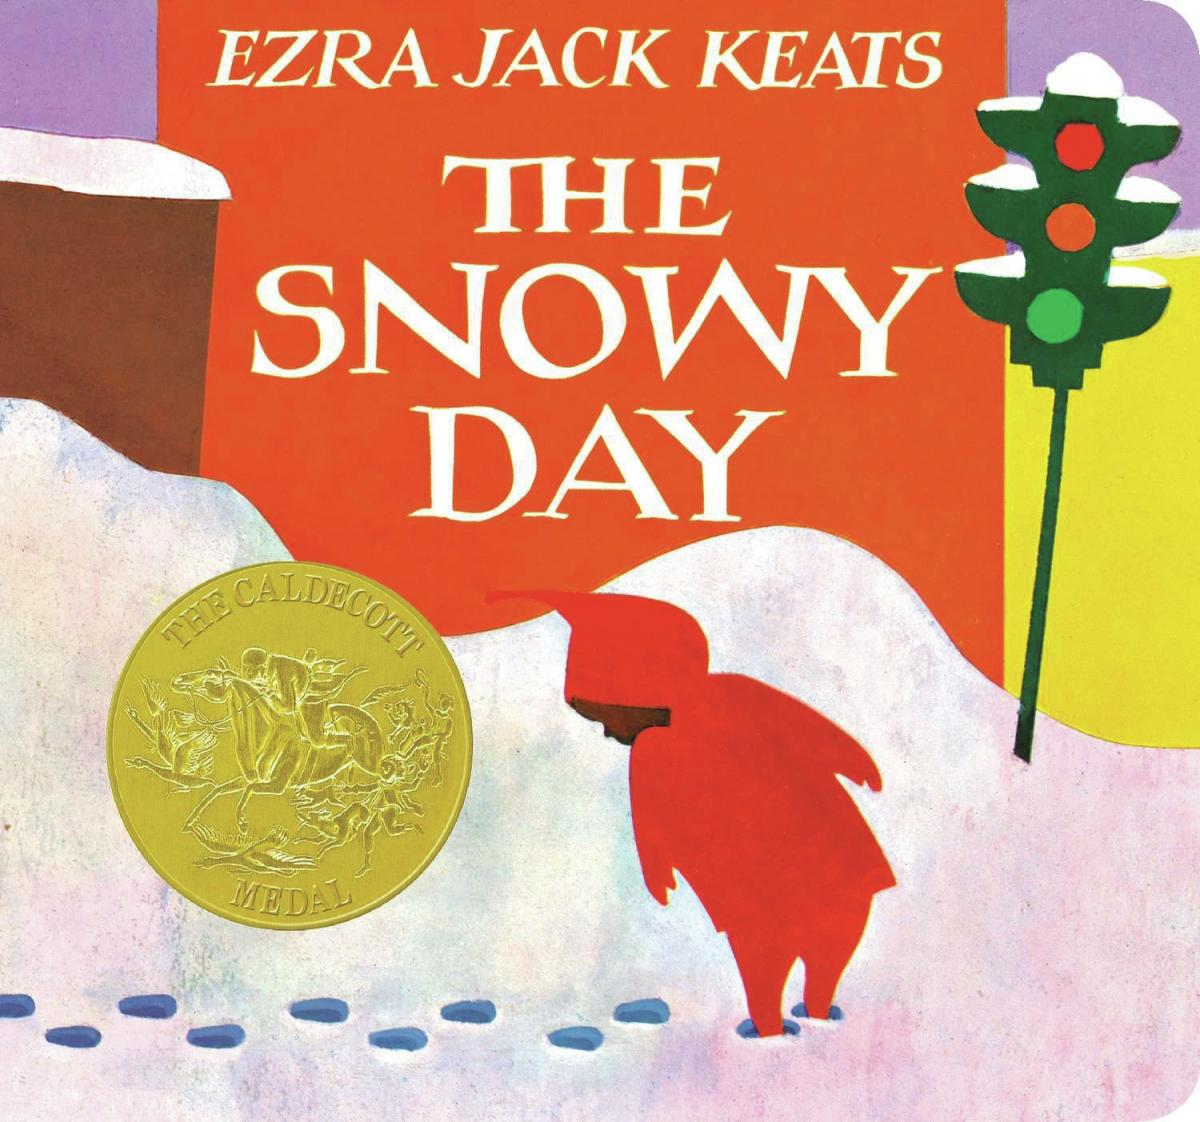 Ezra Jack Keats' 1962 classic The Snowy Day has been checked out more times than any other book in the history of the New York Public Library.